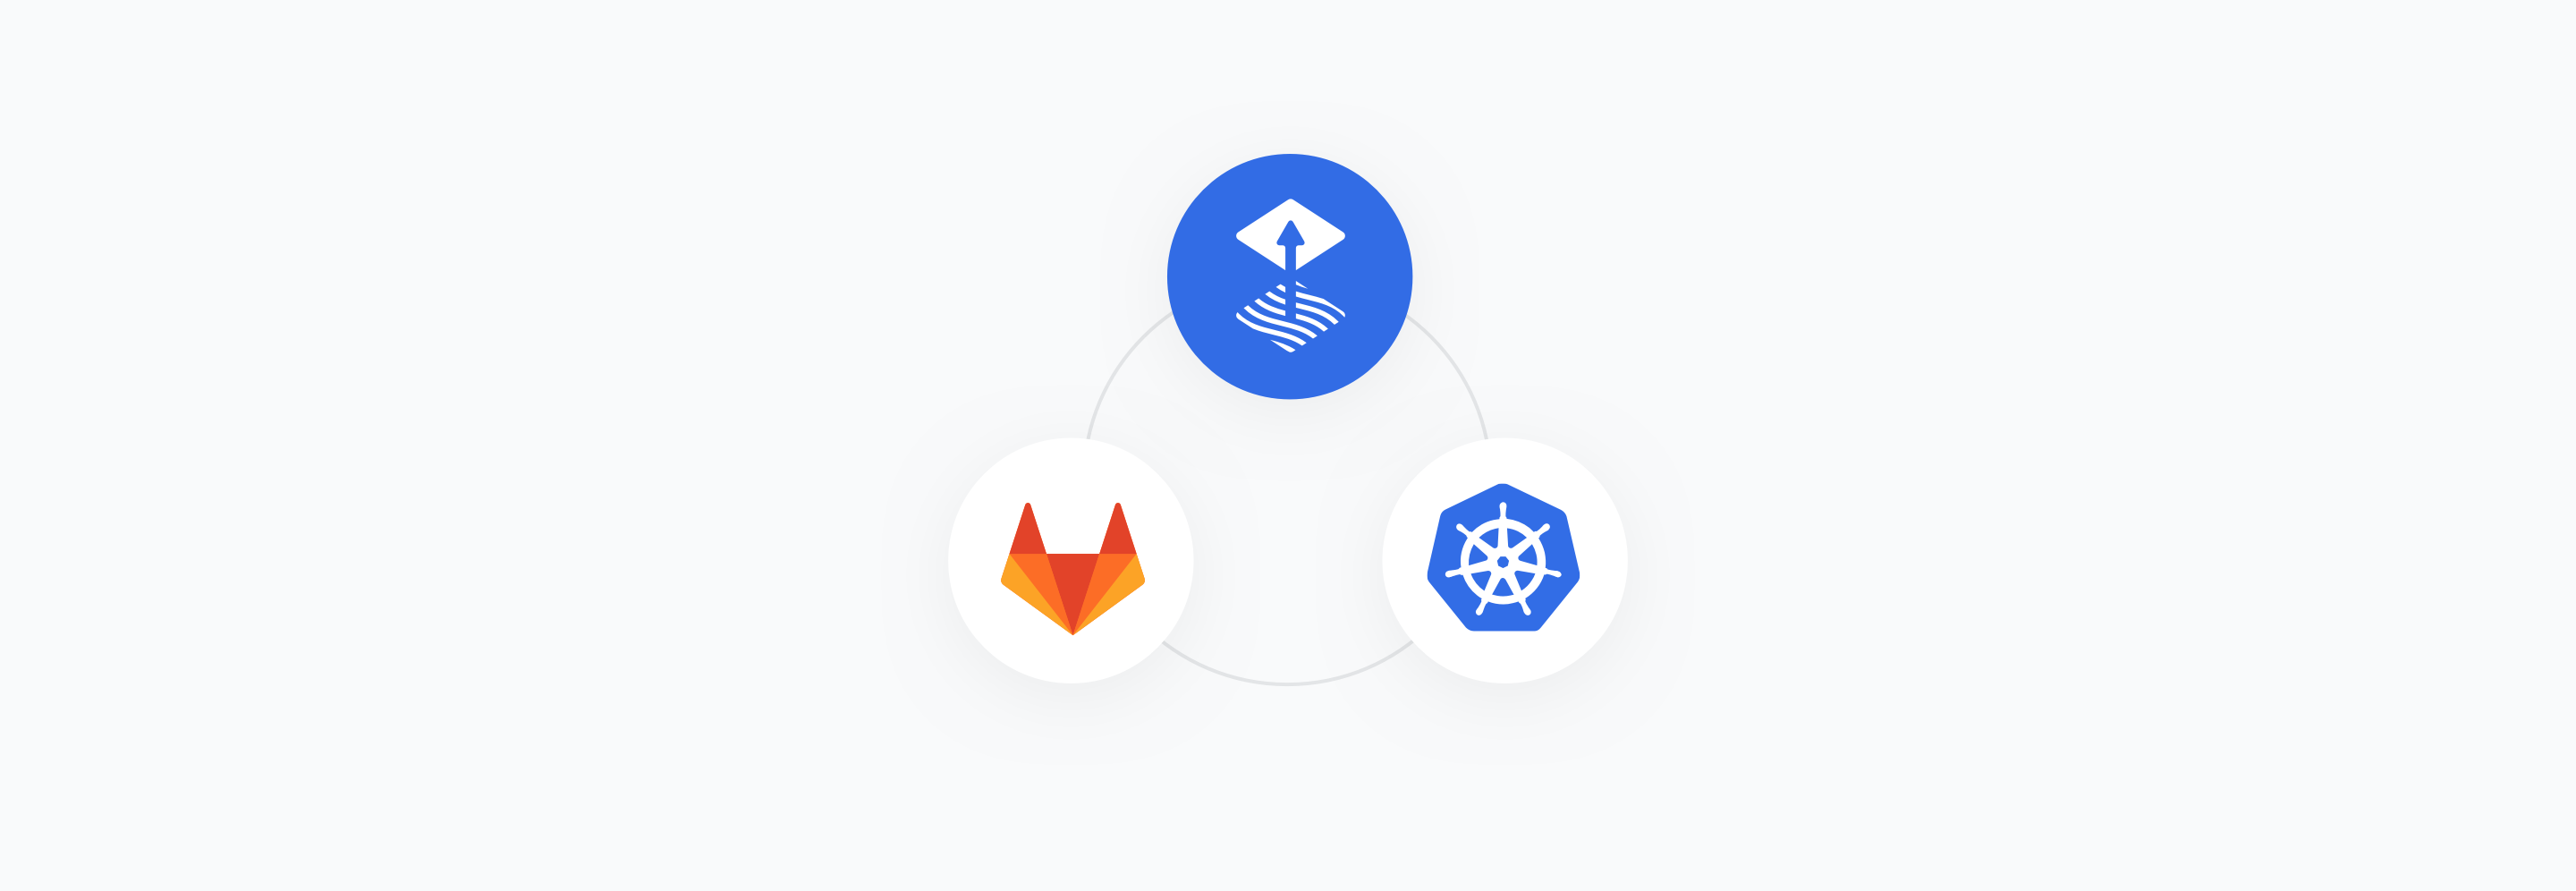 Getting Started with GitOps with Flux and Gitlab